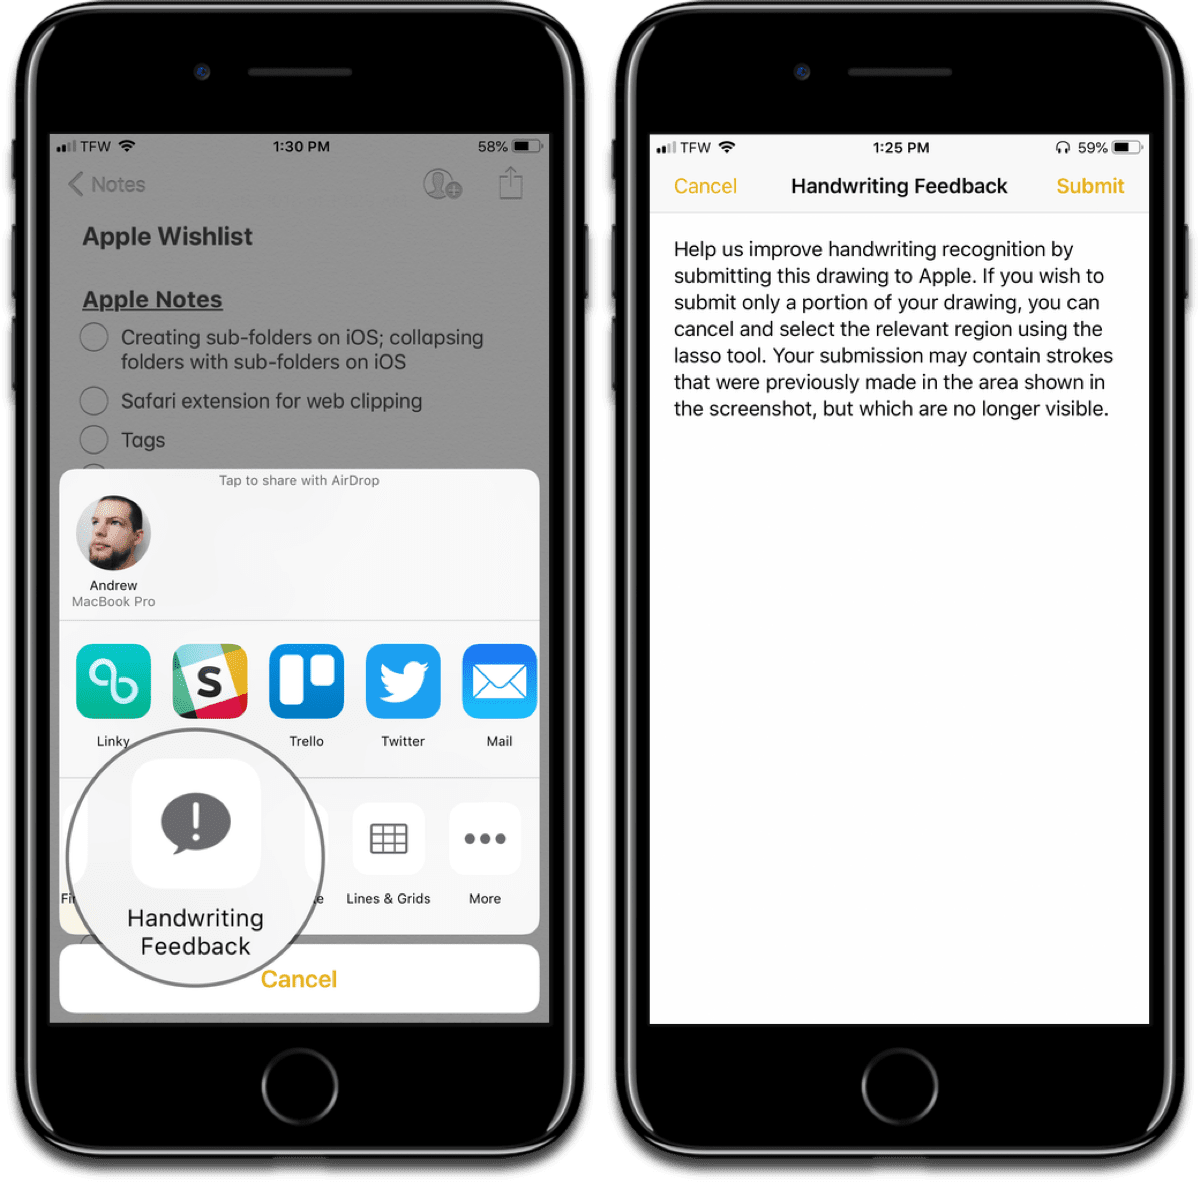 Screenshots of sending handwriting feedback in Apple Notes.